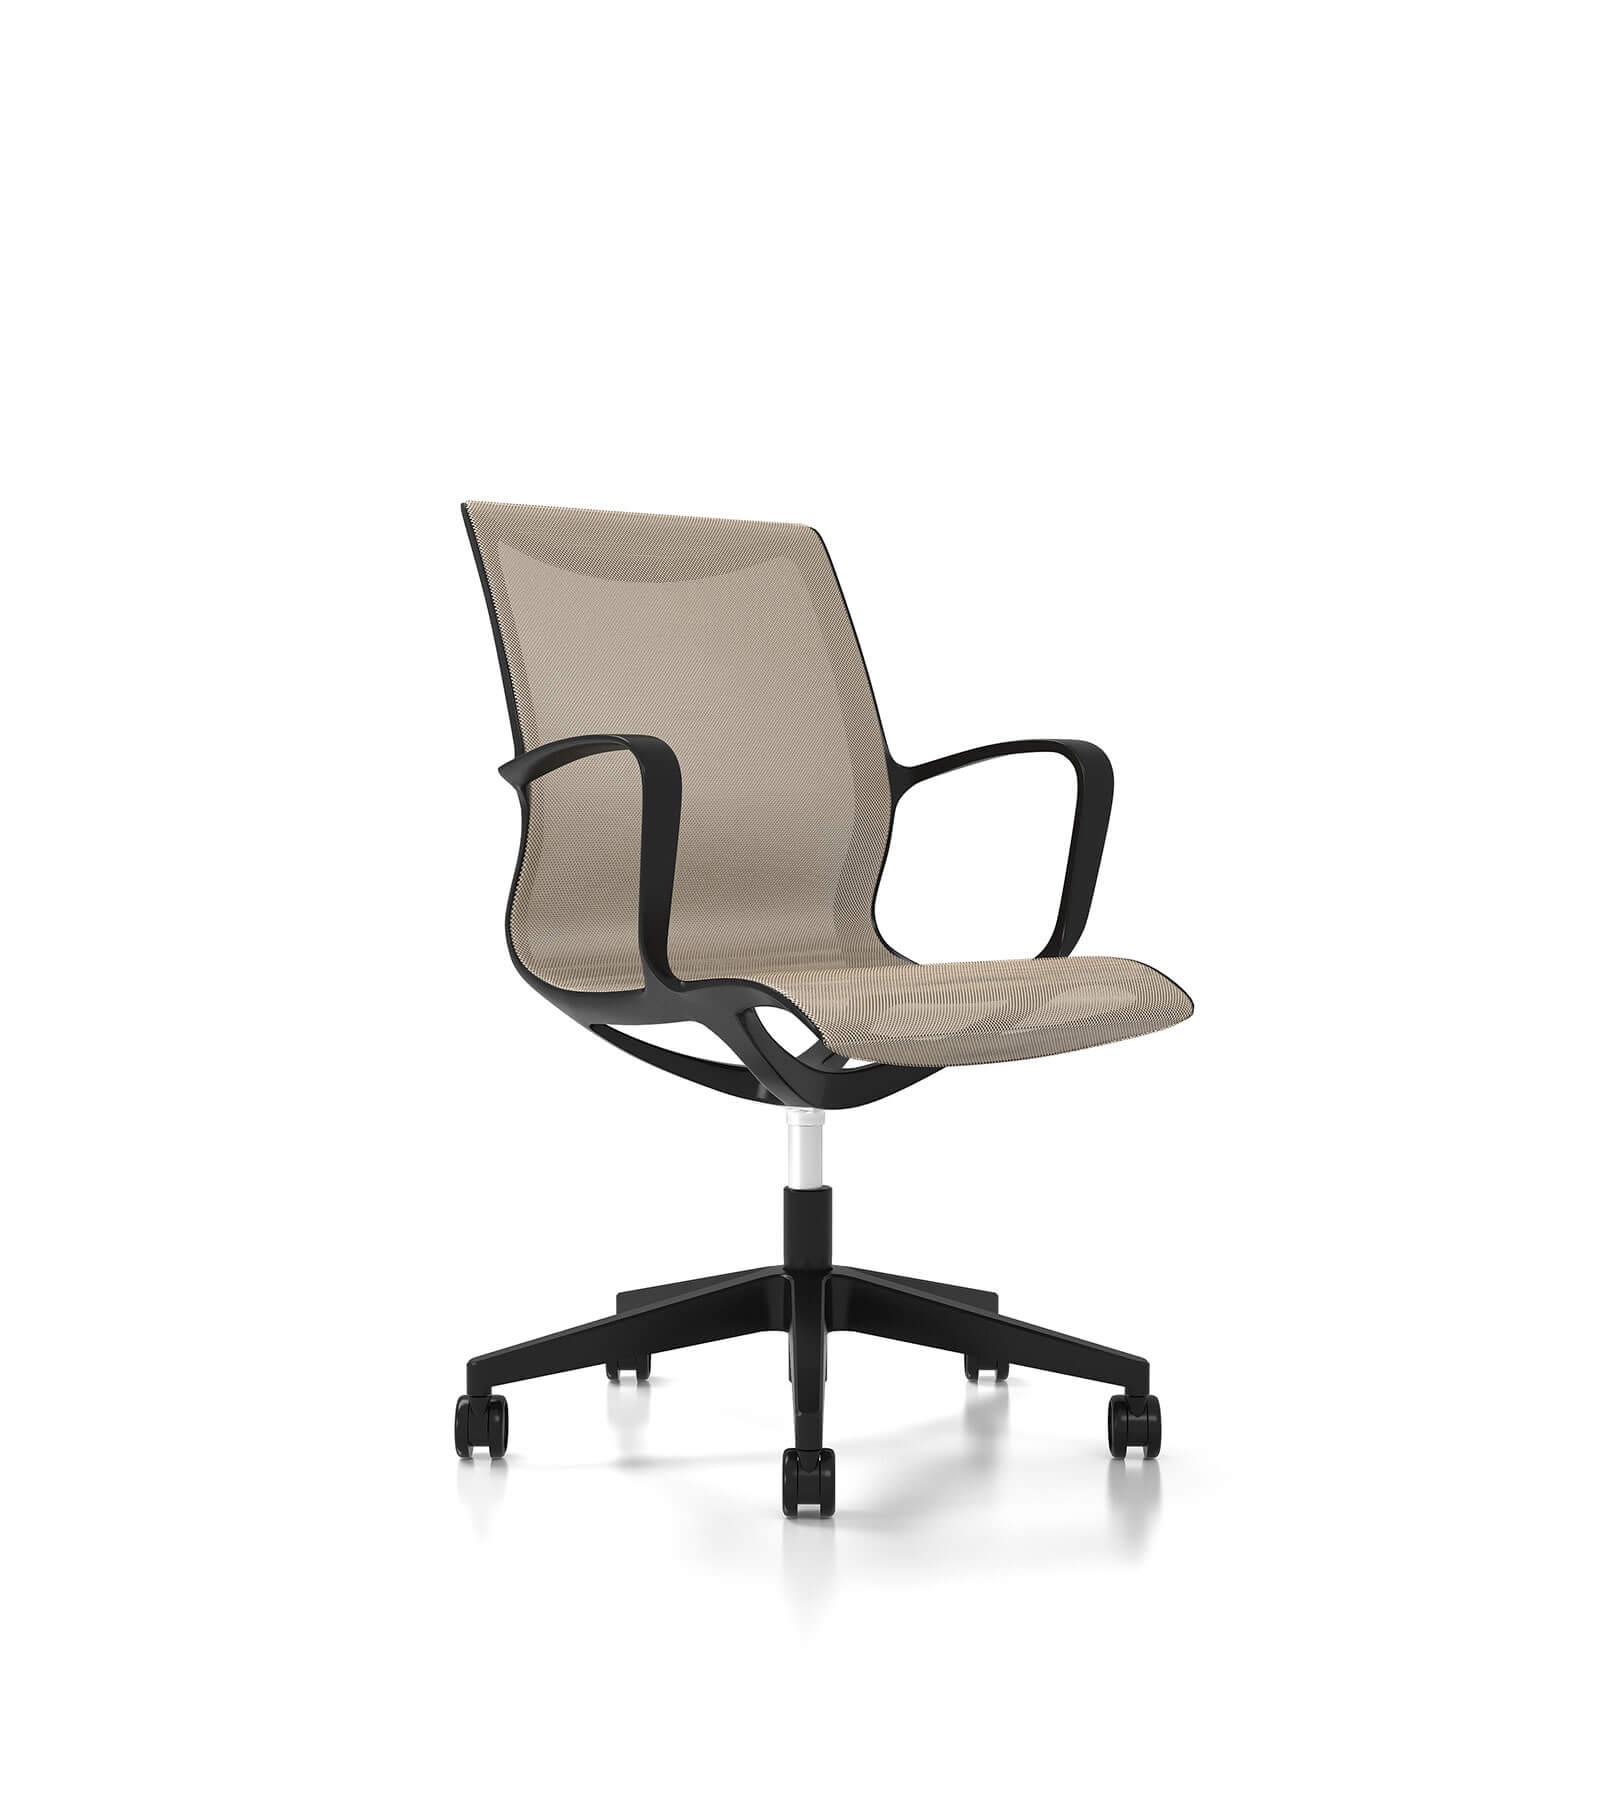 3D model of office chair, 3D visualisation, London, UK.